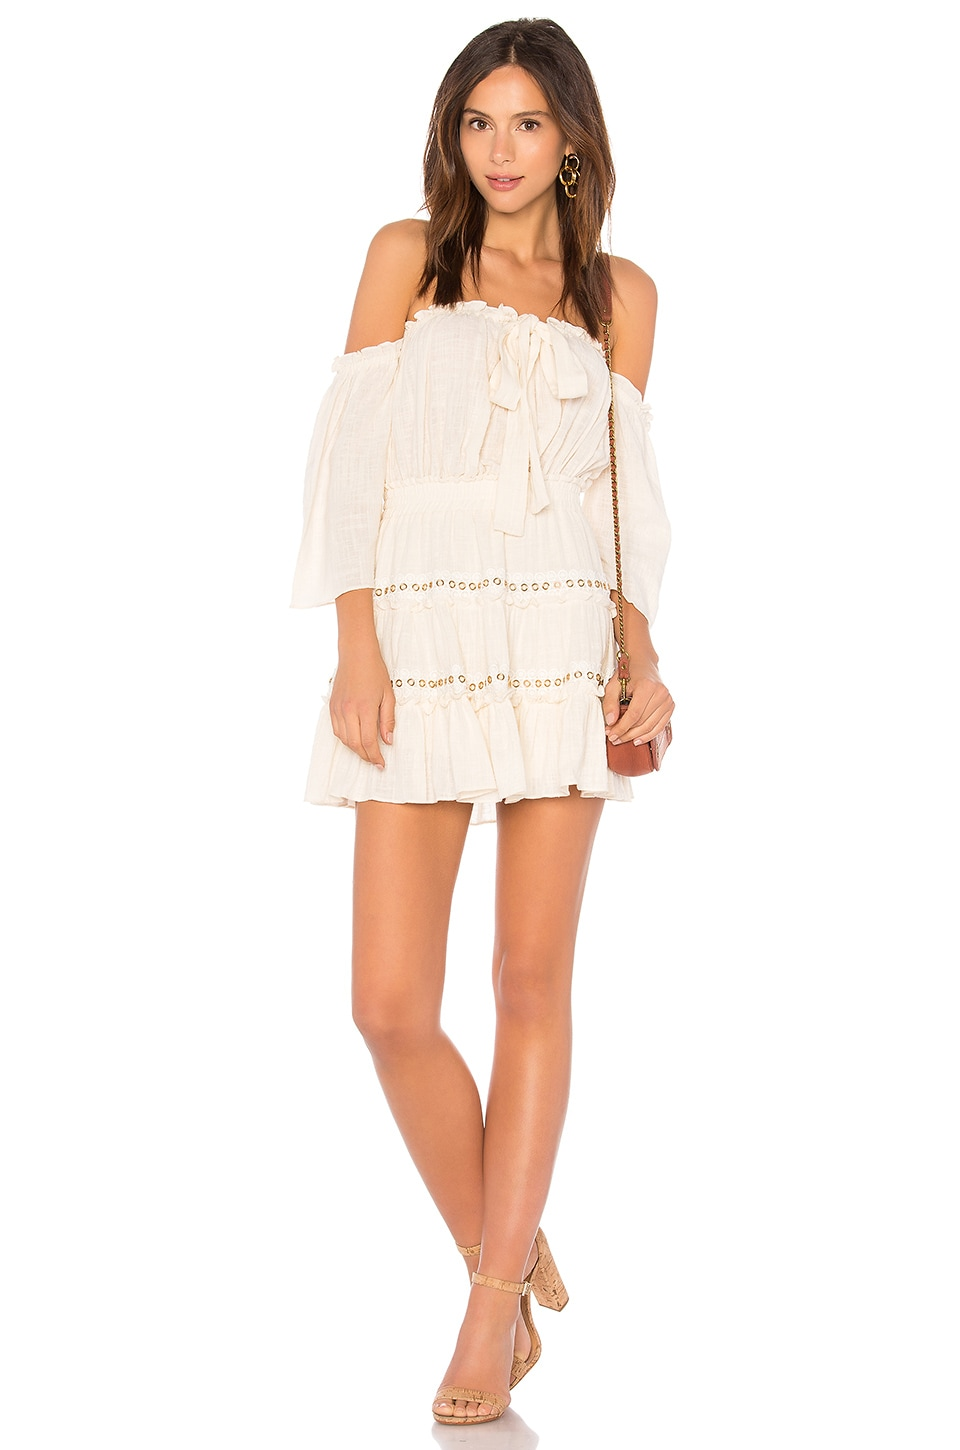 MISA Los Angeles Kerry Dress in Cream